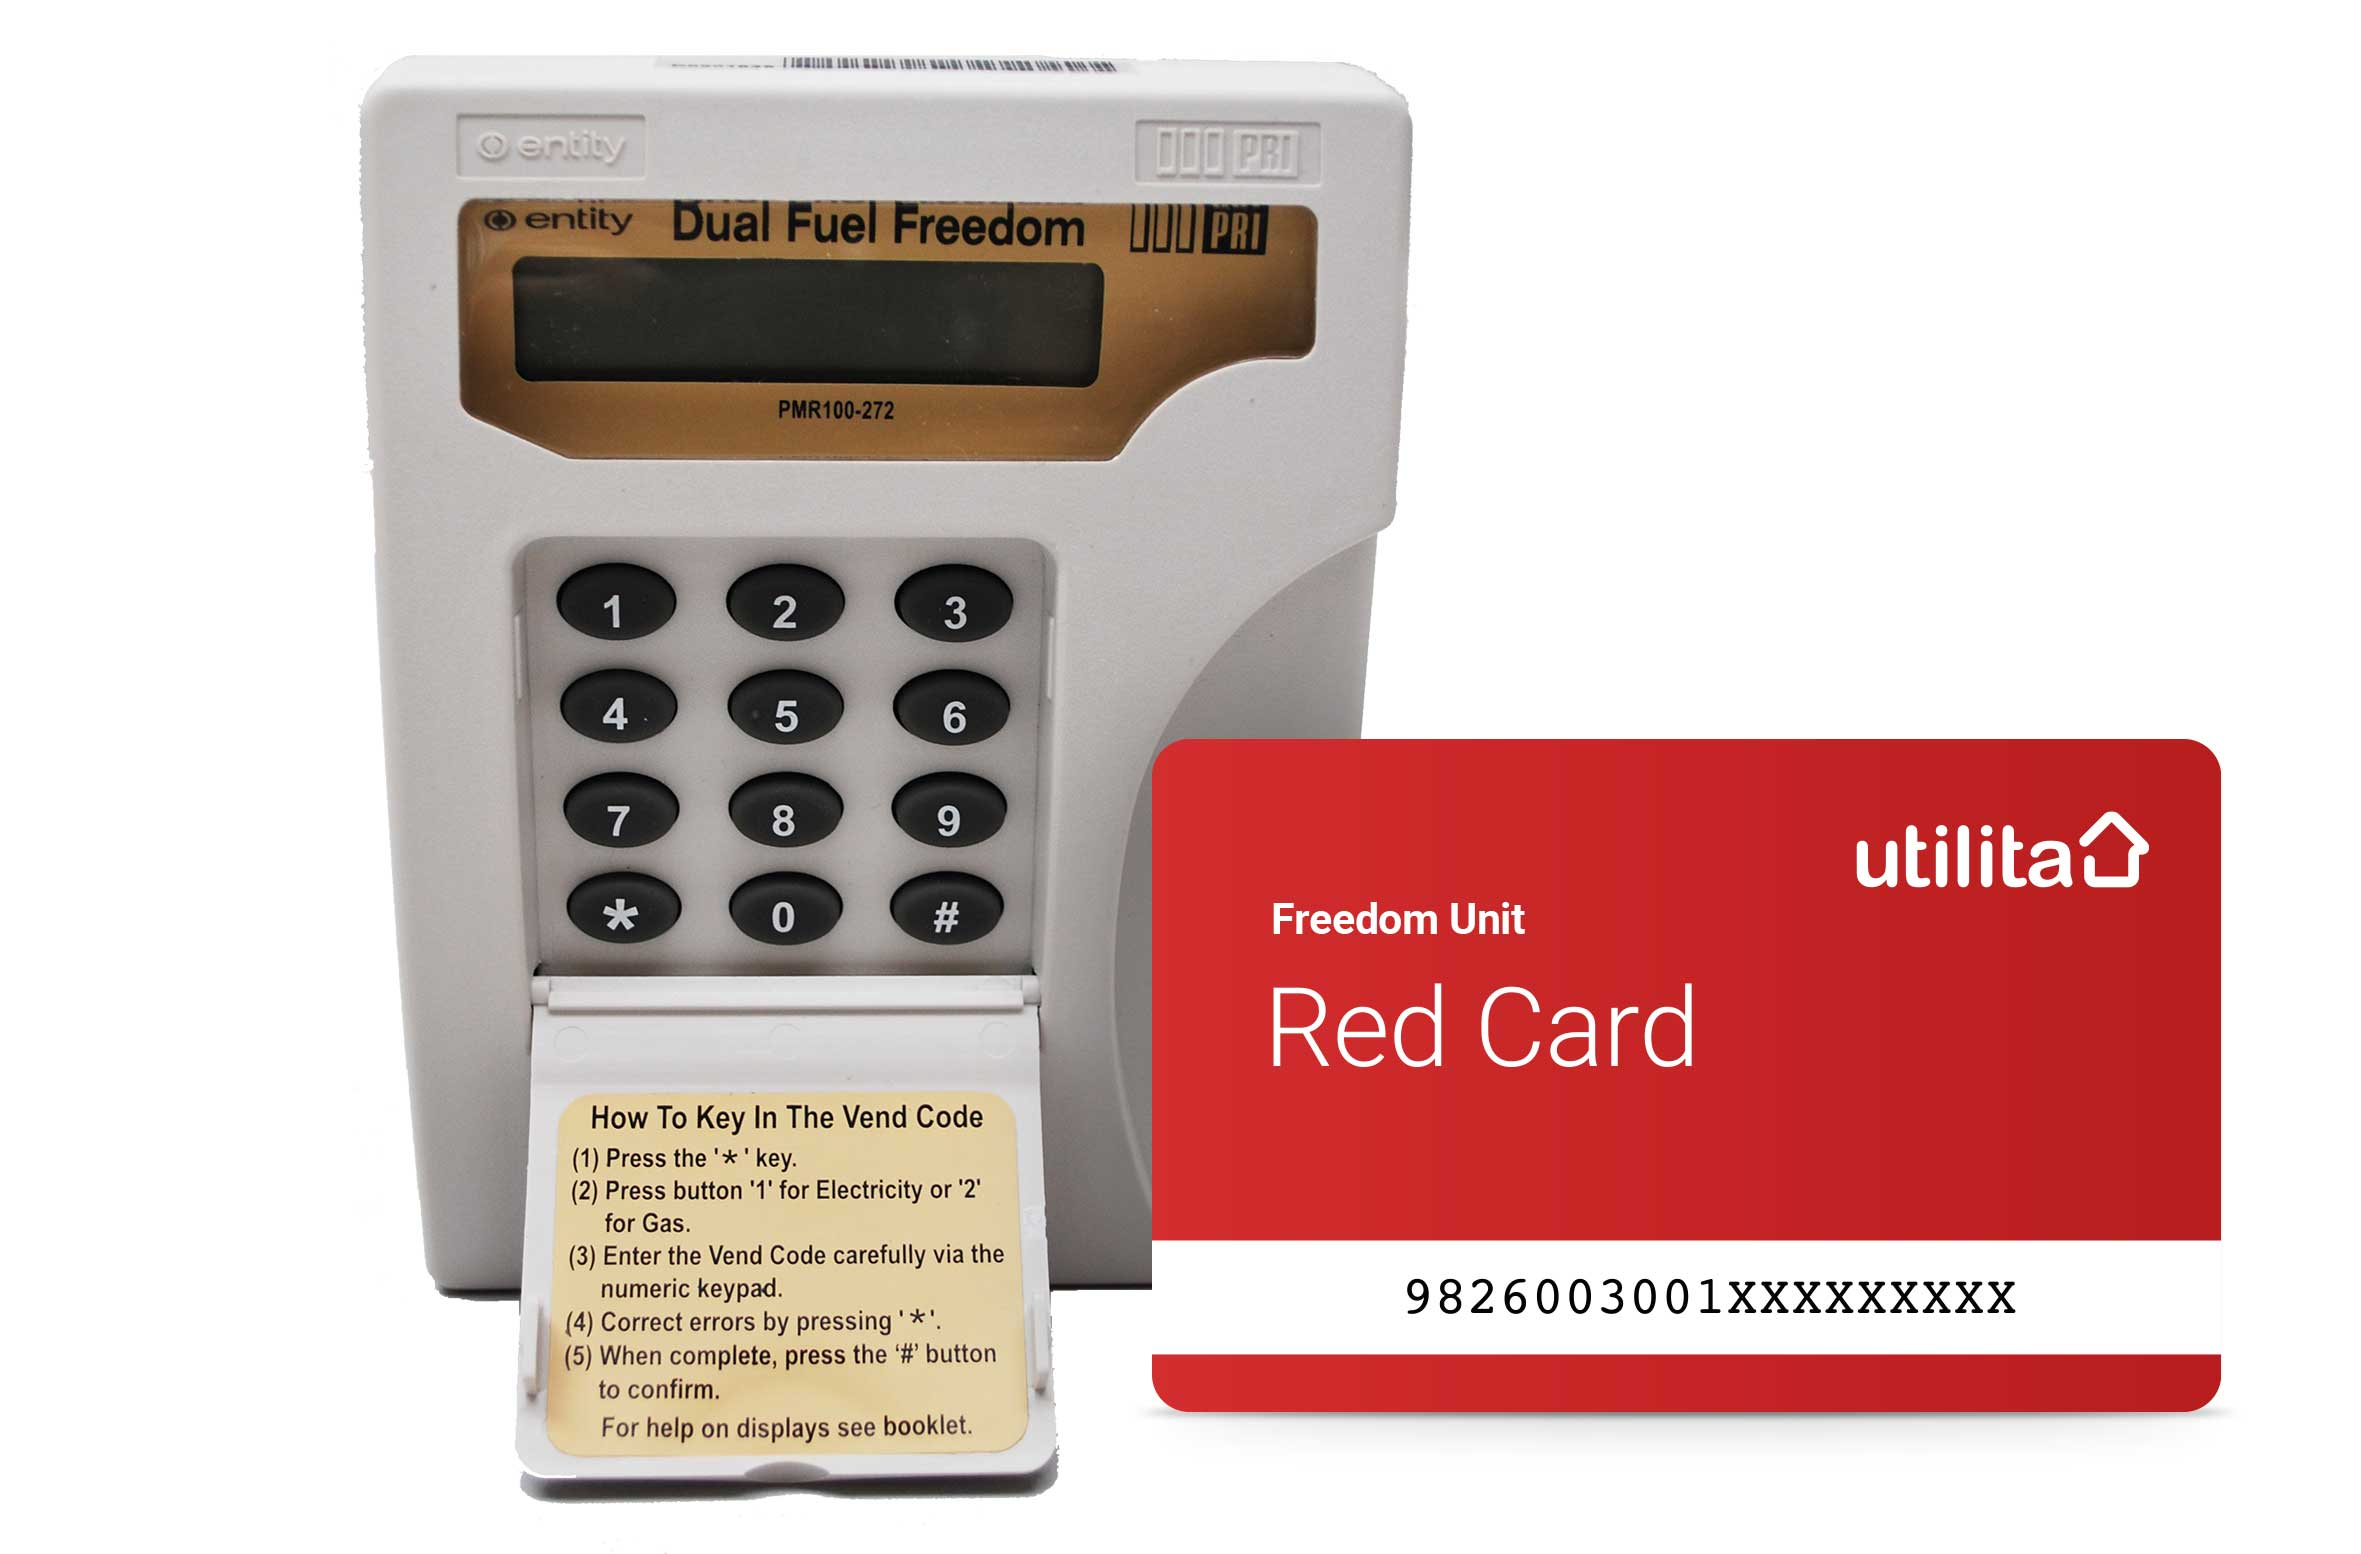 Gas and electric meter with Utilita red prepayment card.